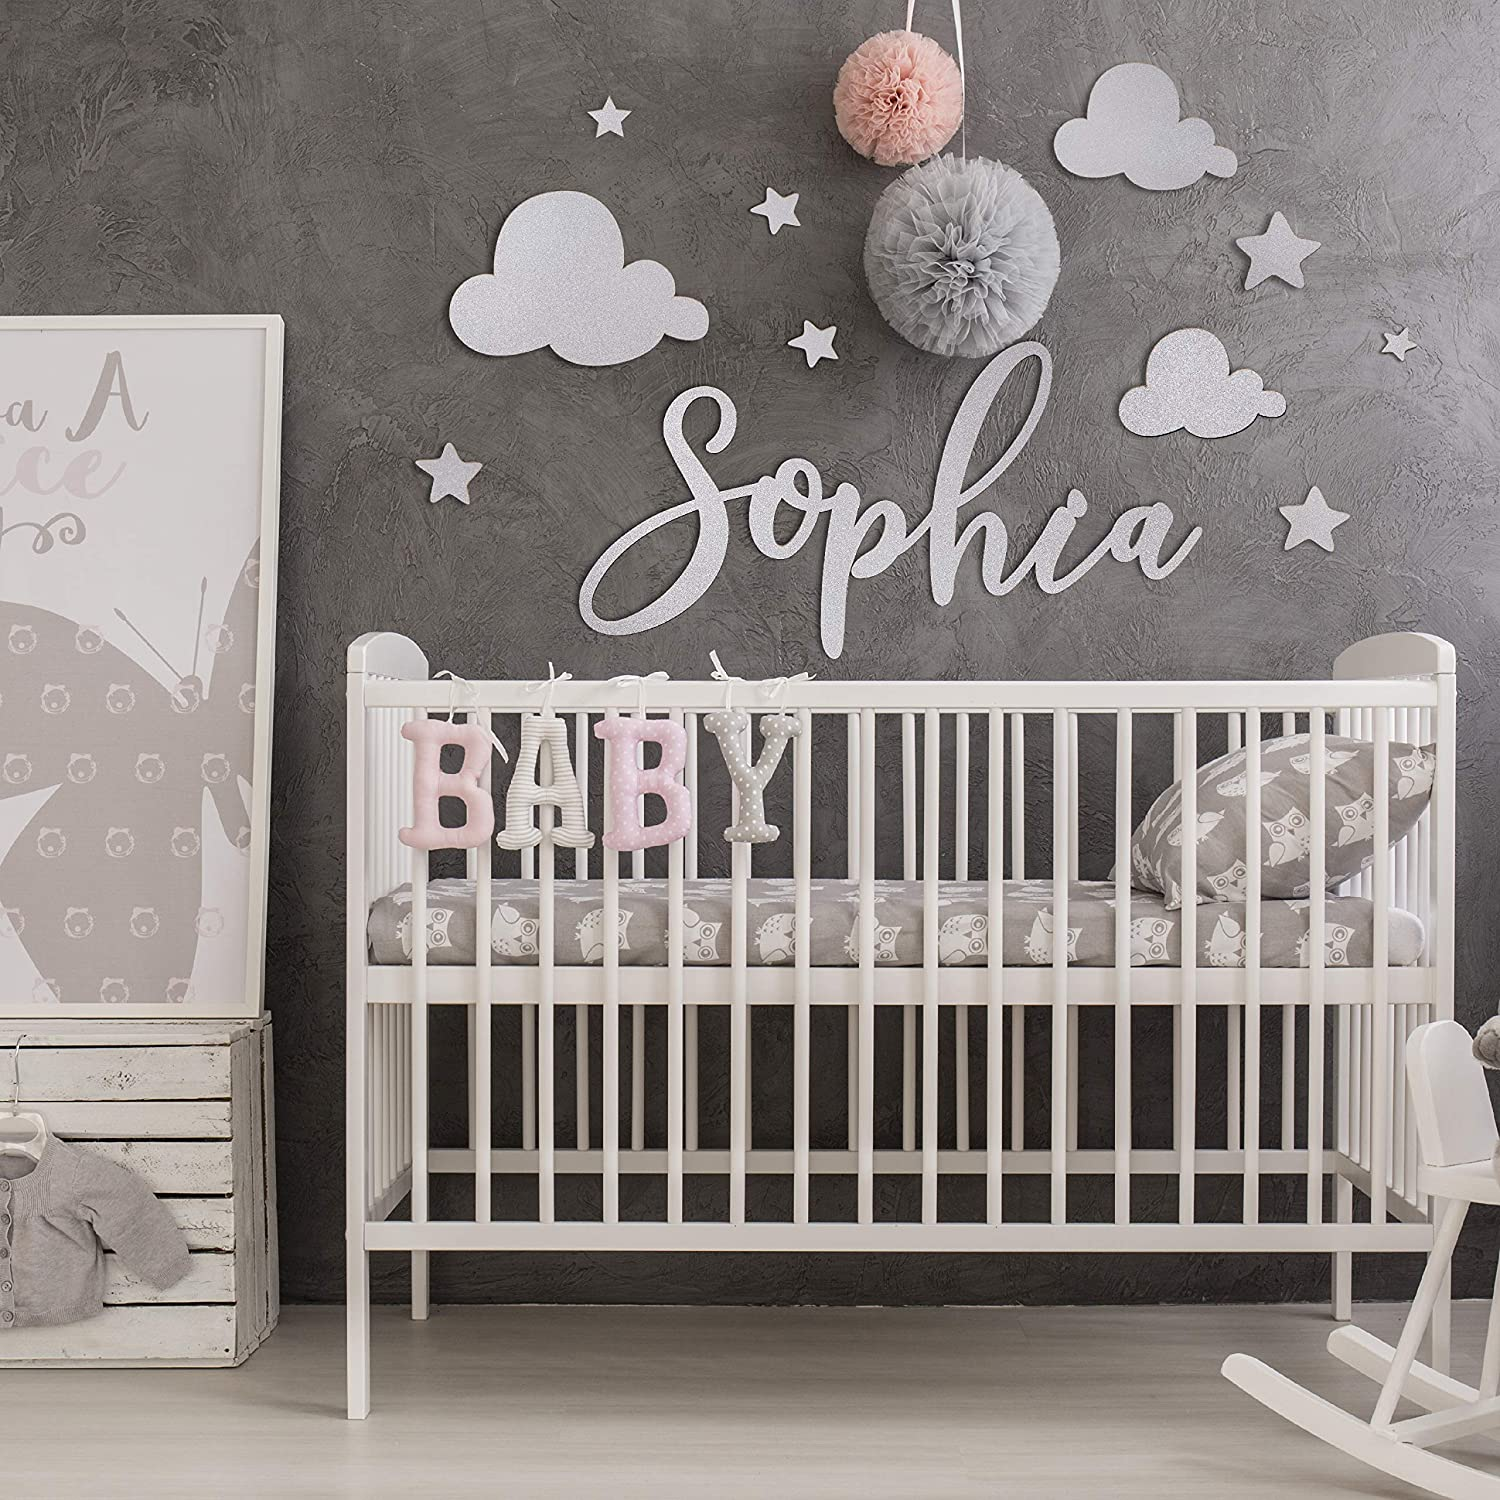 Custom Wood Signs Personalized Handlettered 16x24 Cloud Gray Wood Baby Room Sign Custom Wood Nursery Sign Custom Wood Sign Shop